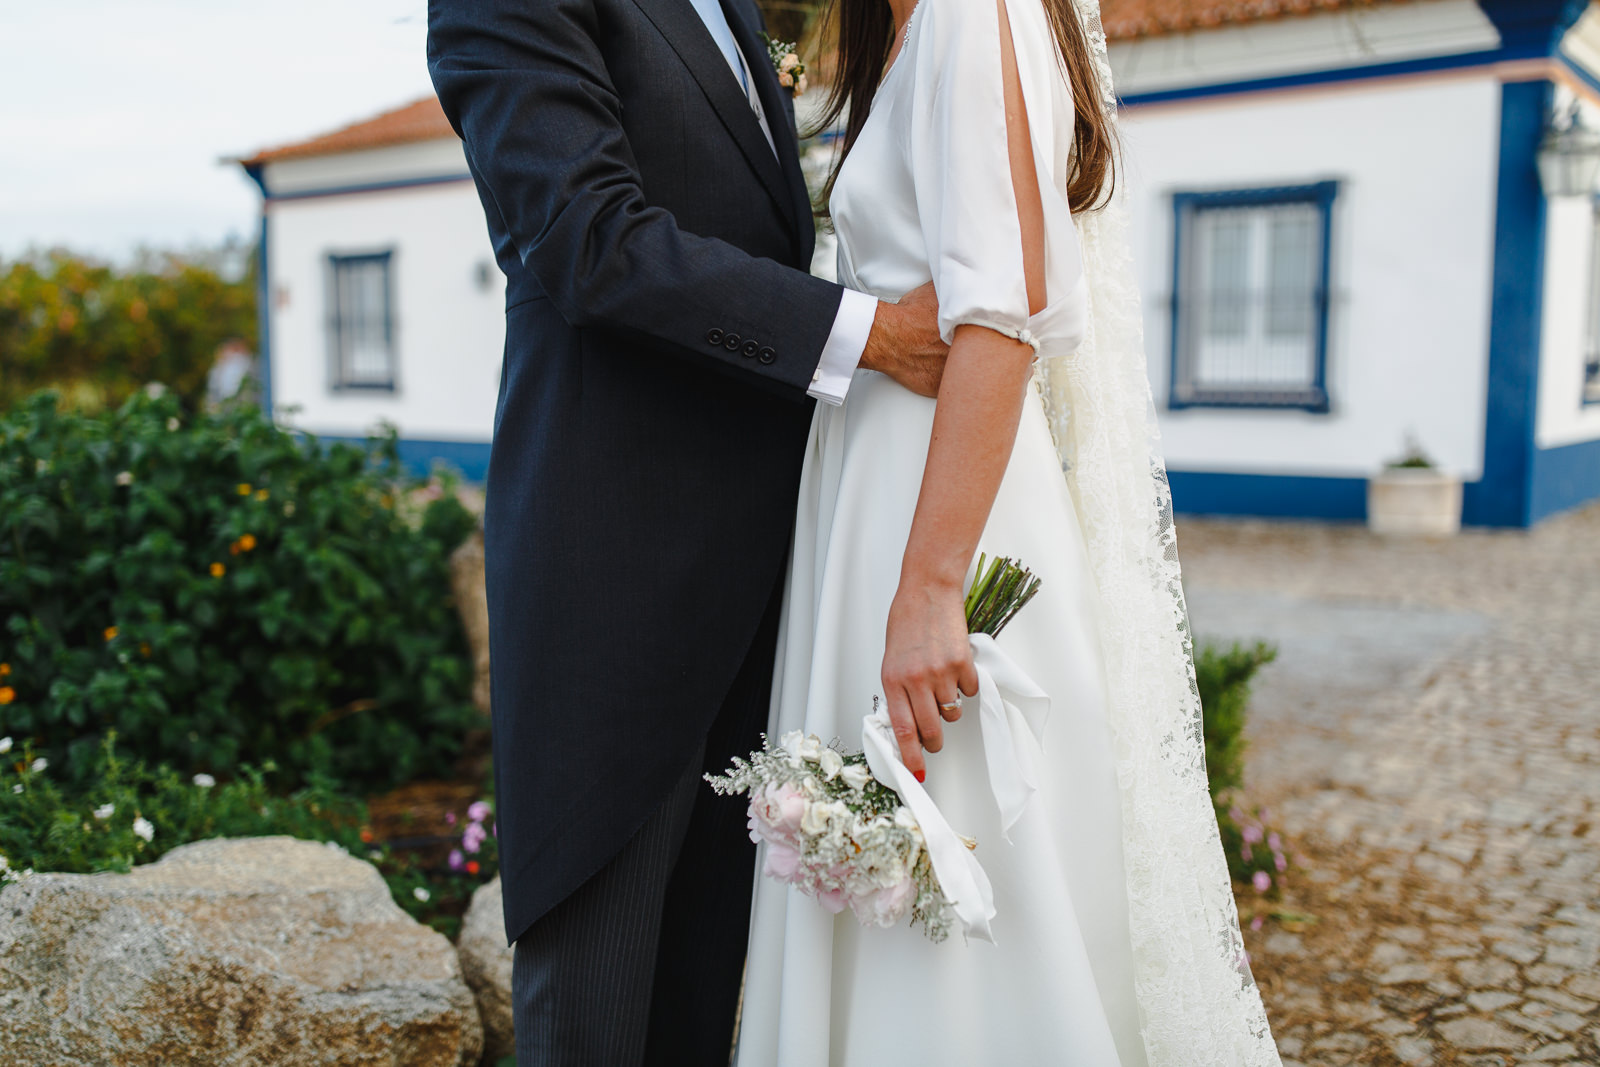 - WEdding at alentejo,with traditional SINGING